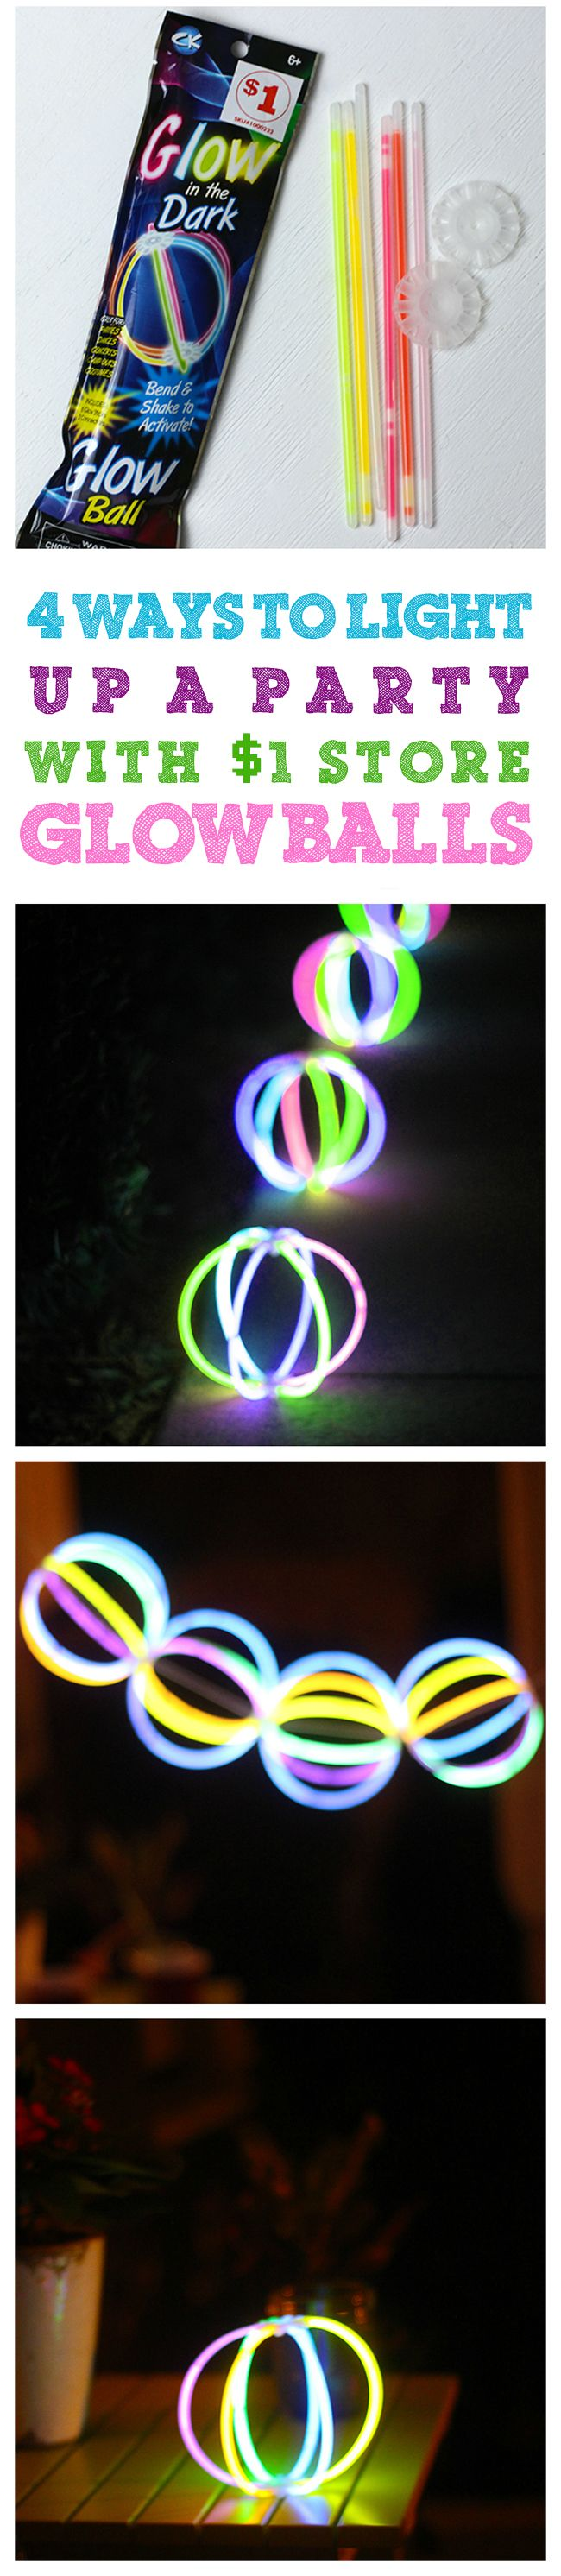 Totally cheap way to decorate for summer parties. Just use those $1 store Glow…